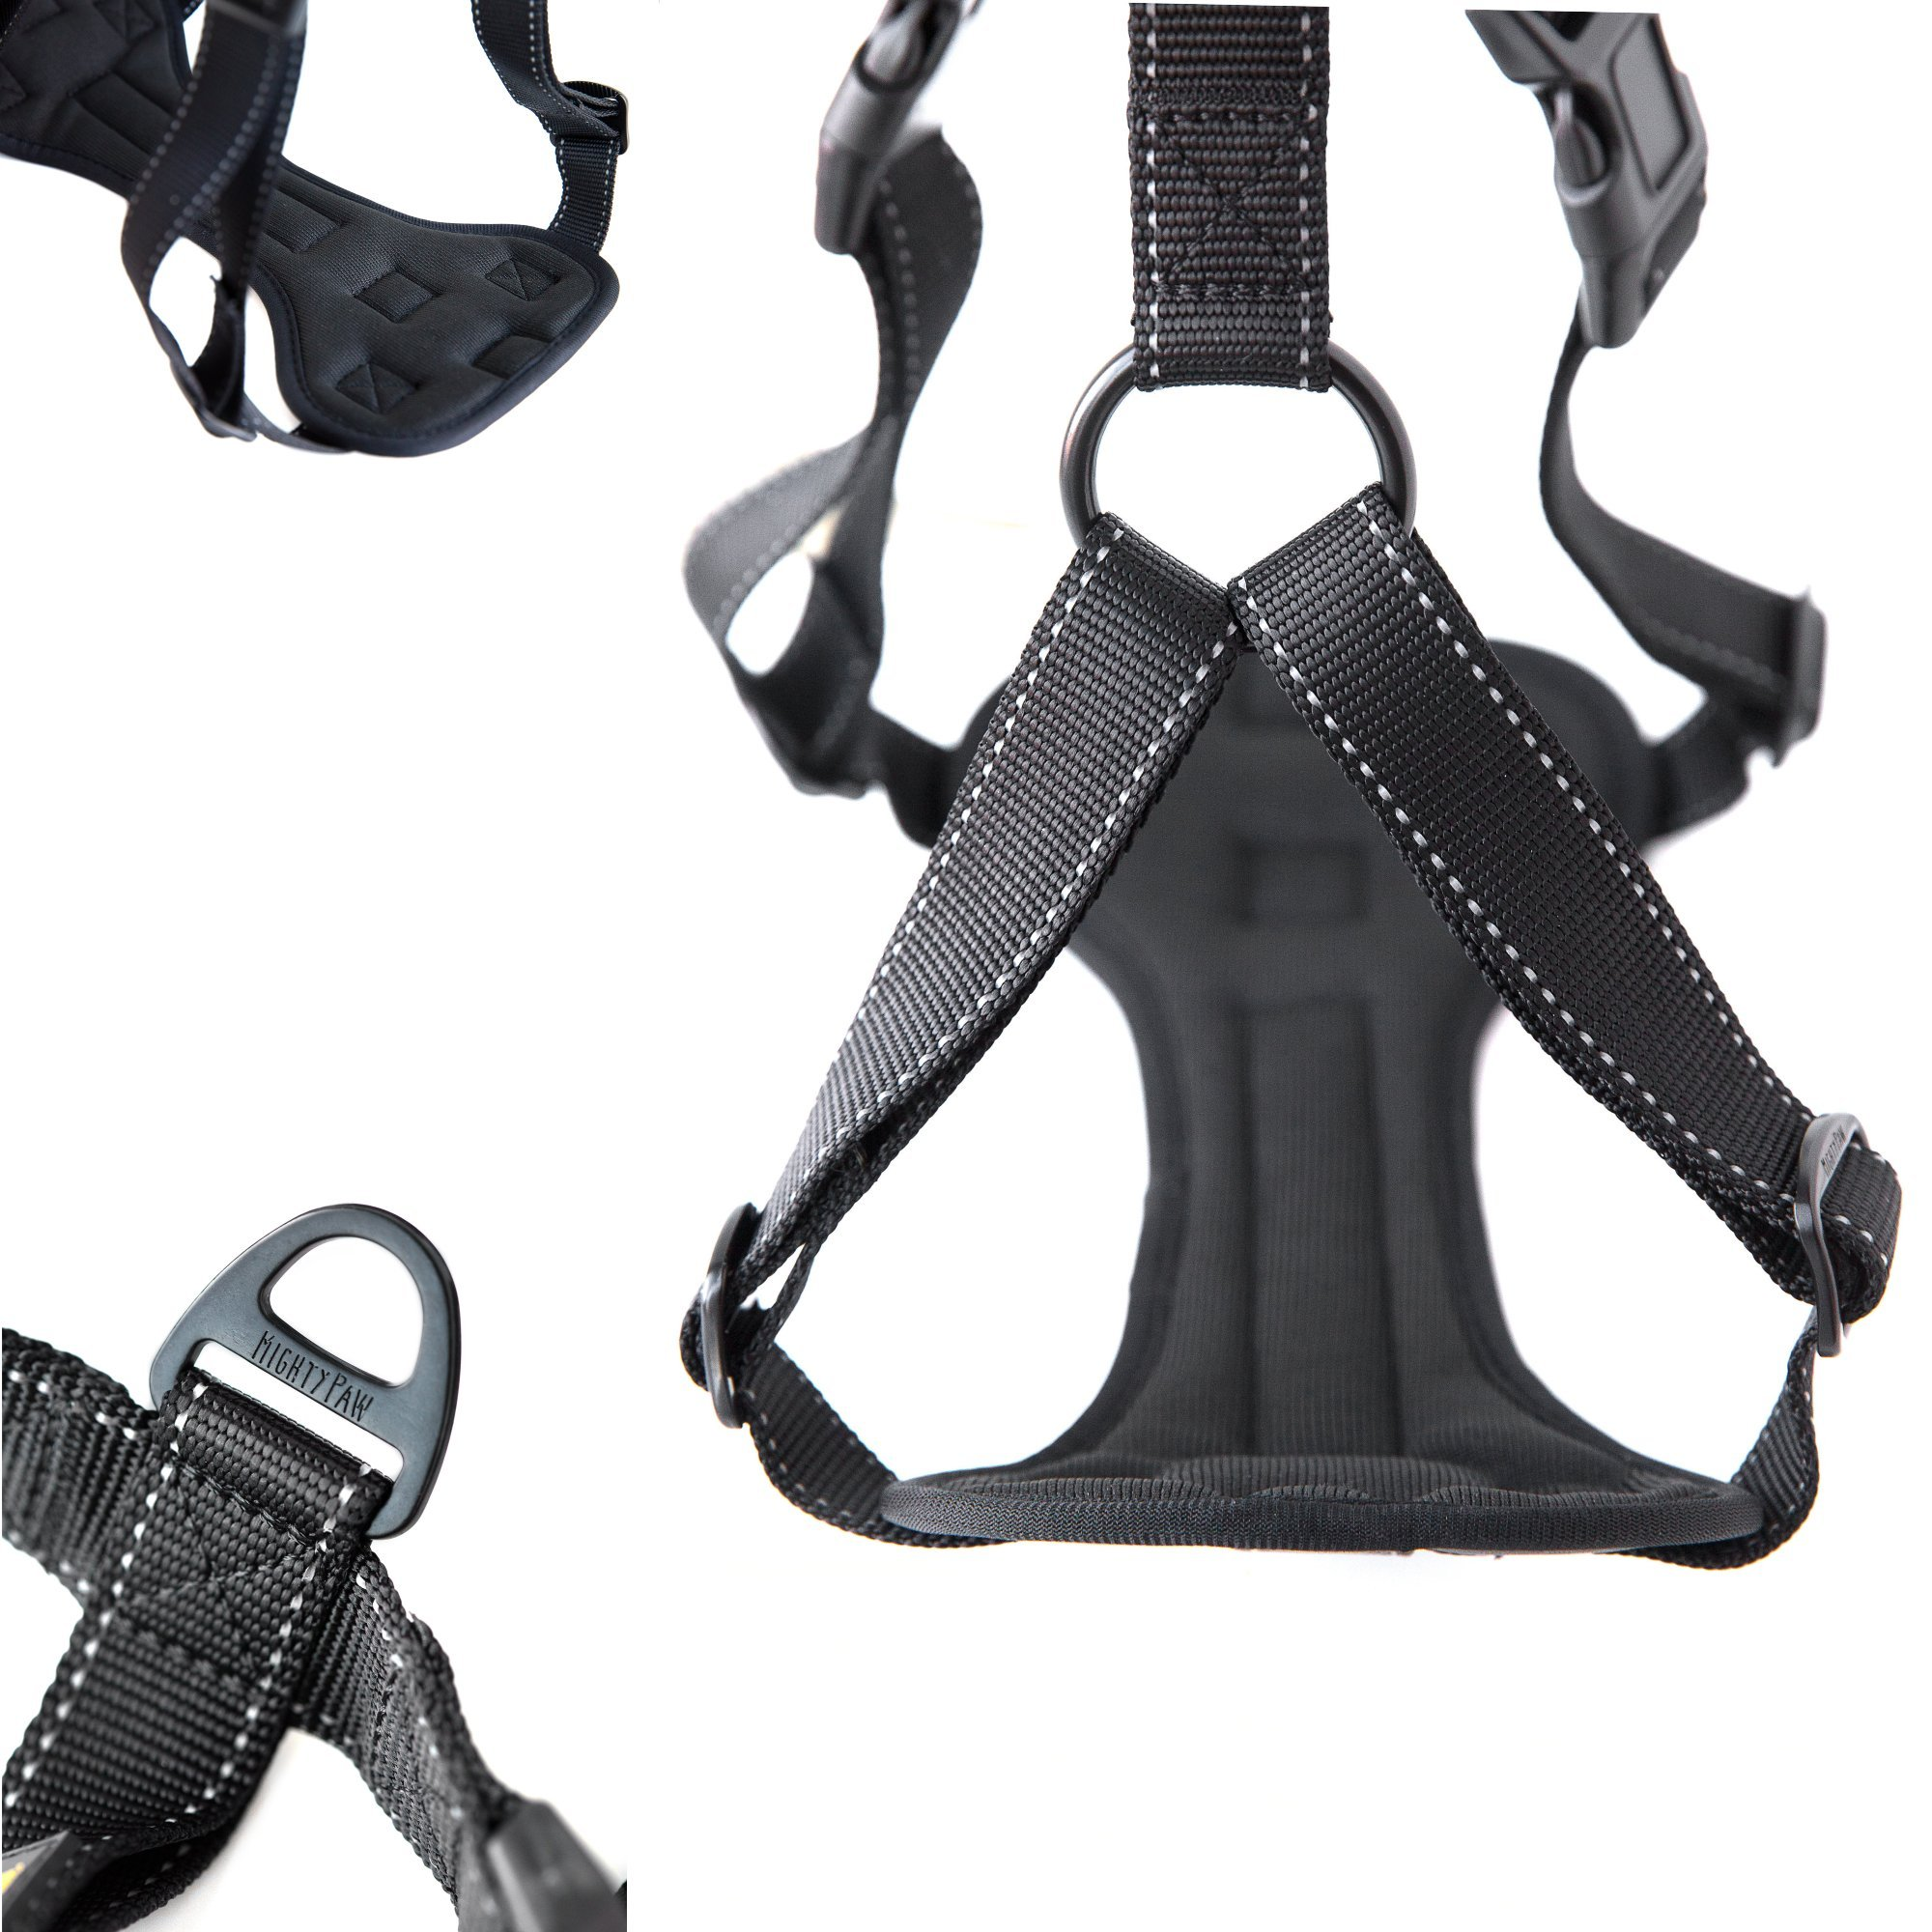 Mighty Paw Vehicle Safety Harness, Car Harness with Adjustable Straps and Soft Padding, Doubles as Dog Walking Harness with Front Leash Attachment (Medium, Black)